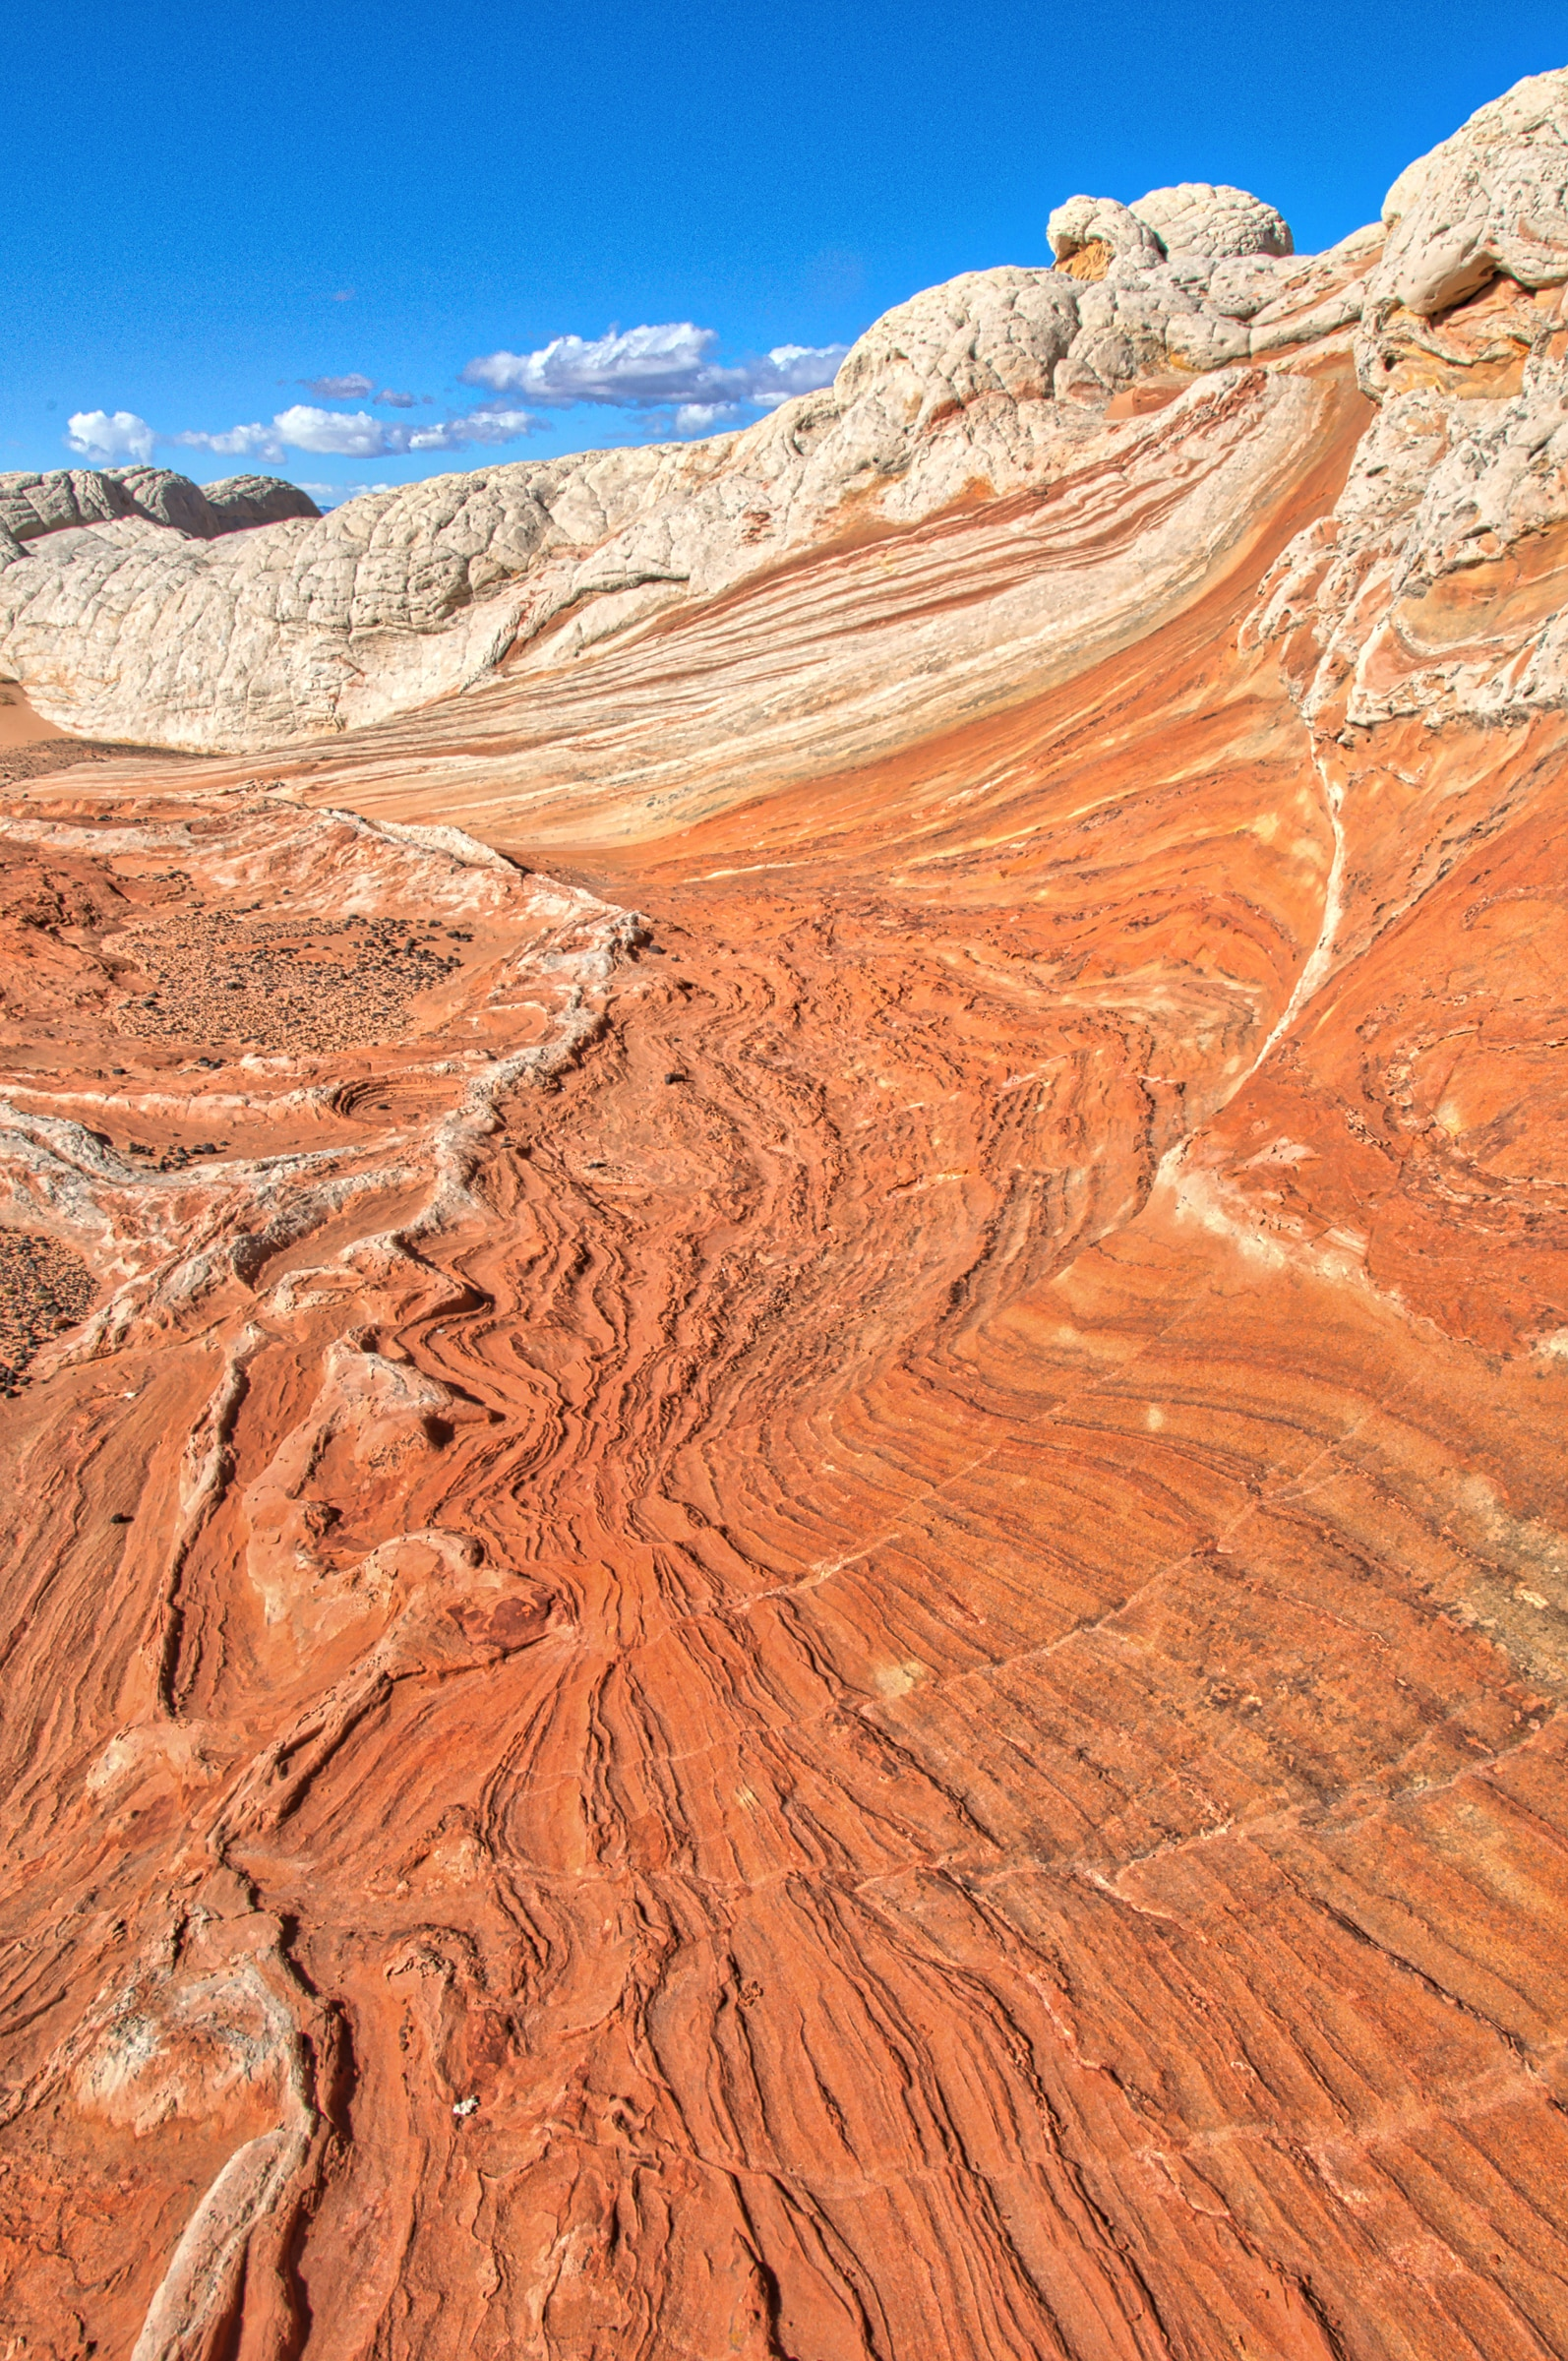 The red layered rocks look like surf rolling in while the whote brain rock look like white caps in Vermillion Cliffs National Monument.